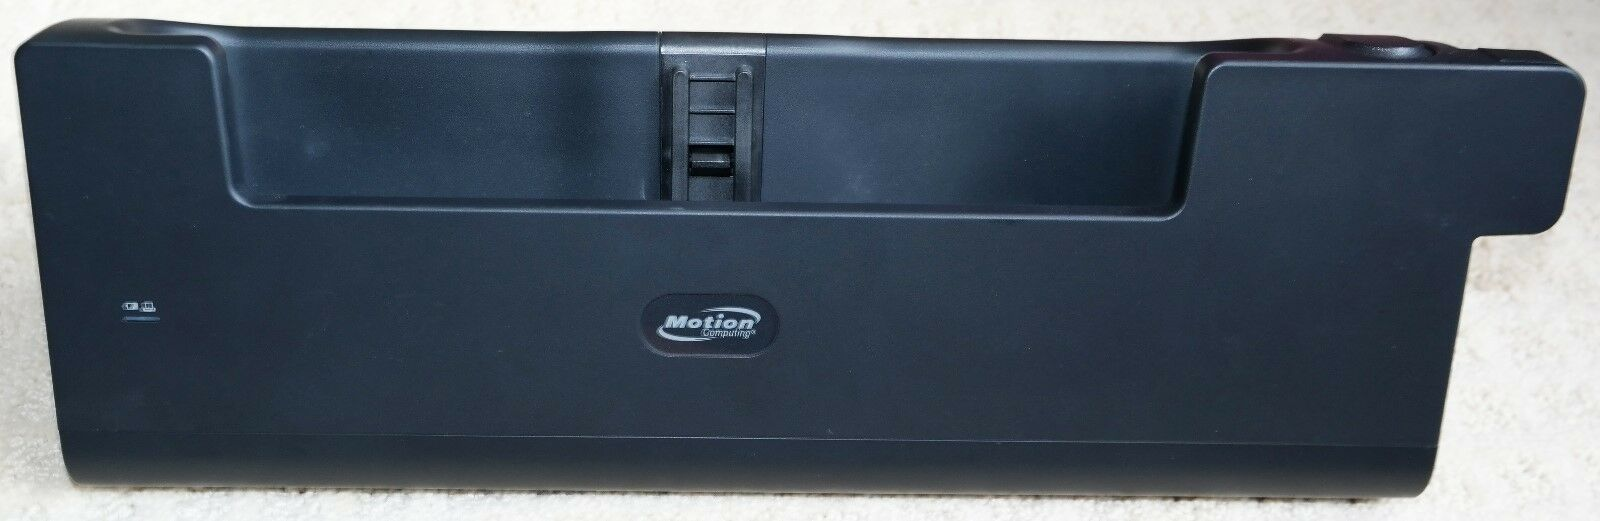 New Open Box Motion Computing F5 Docking Station (Black) with Multible Ports